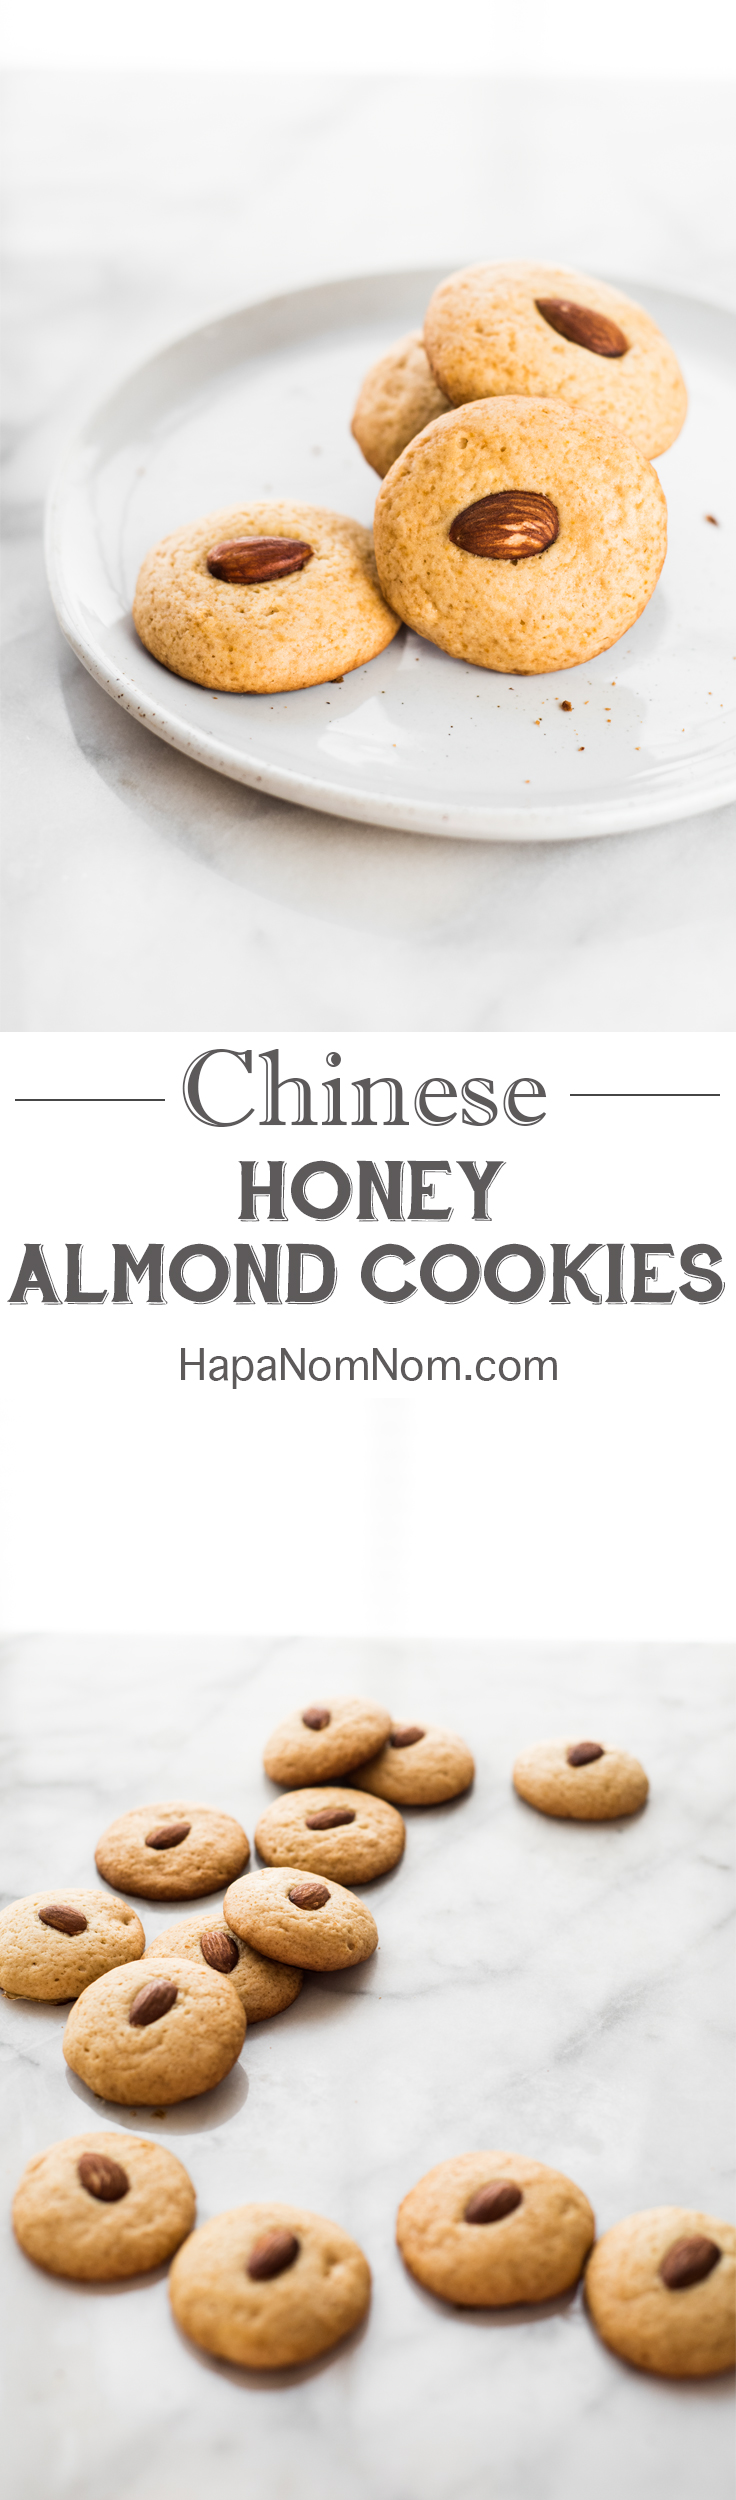 Celebrate Chinese New Year with these delicious Honey Almond Cookies! Softer and lighter than traditional ones, but every bit as delicious!